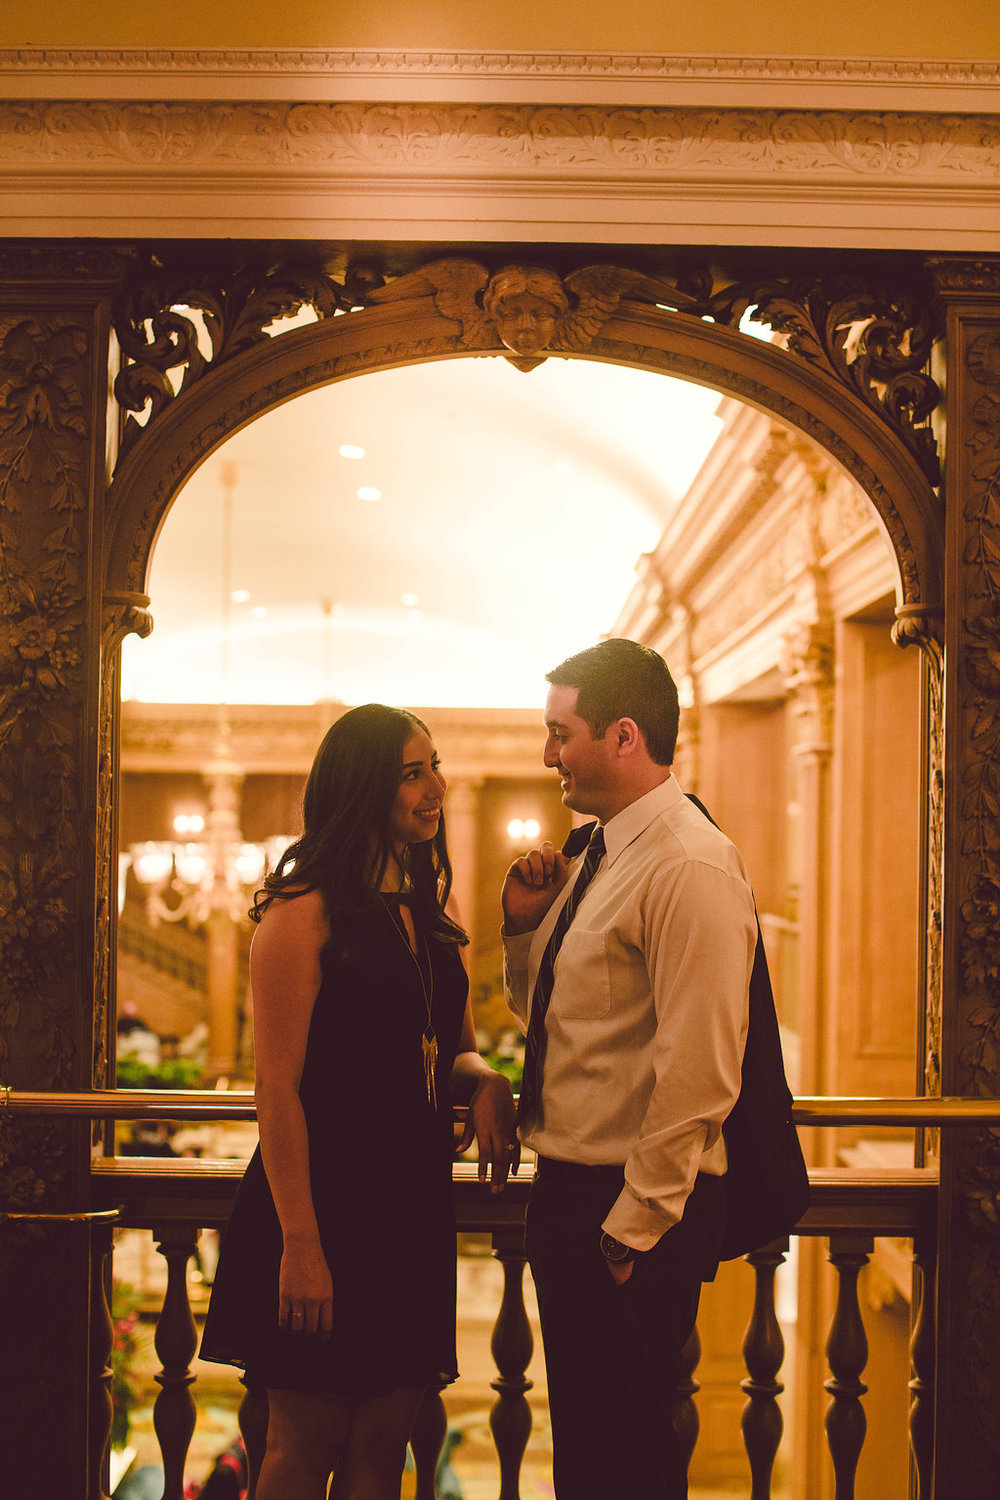 Ariana+Richard_Engagement+Seattle+Engagement_Adina+Preston+Weddings47.jpg